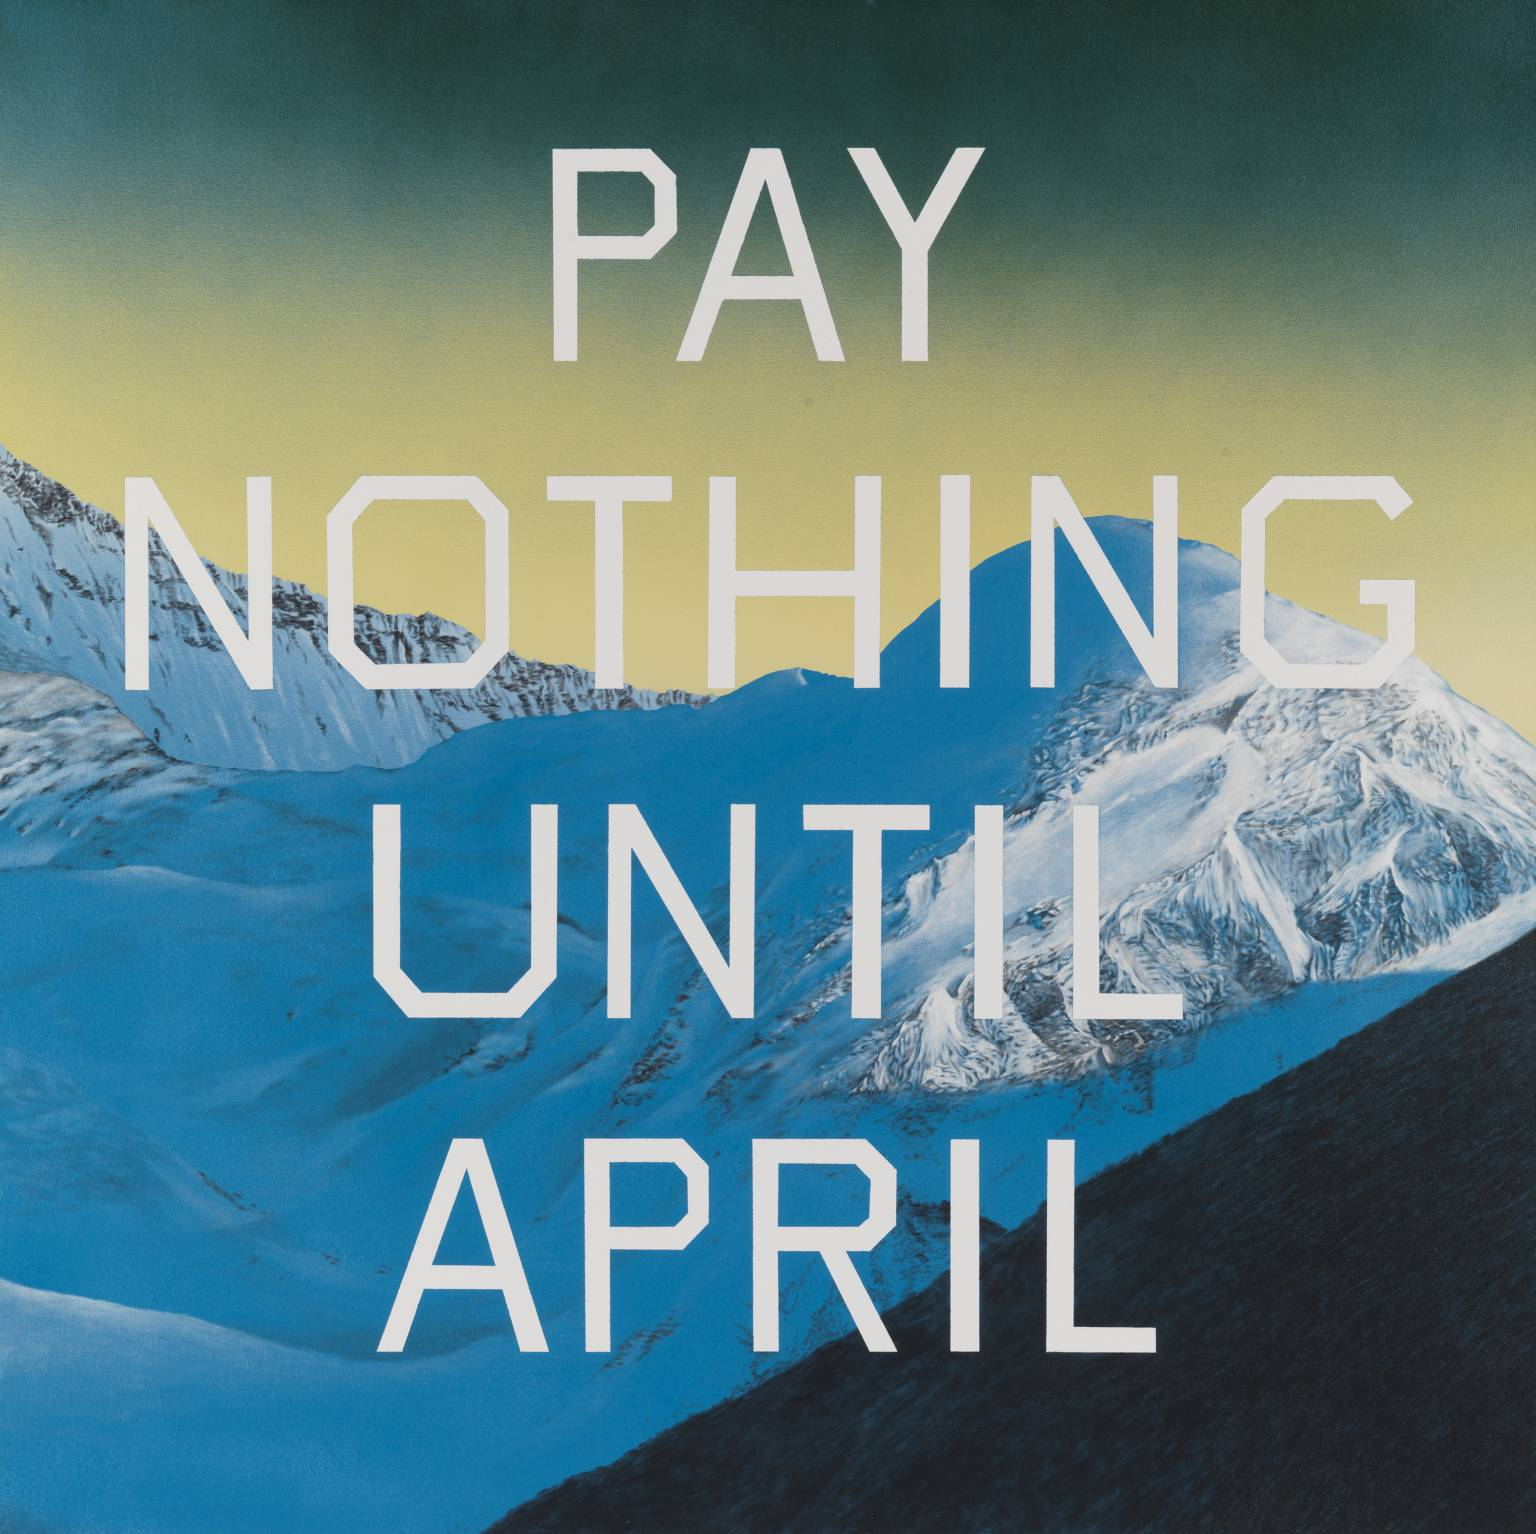 Saatchi Art's collection of Ed Ruscha Inspired works draws inspiration from his iconic style